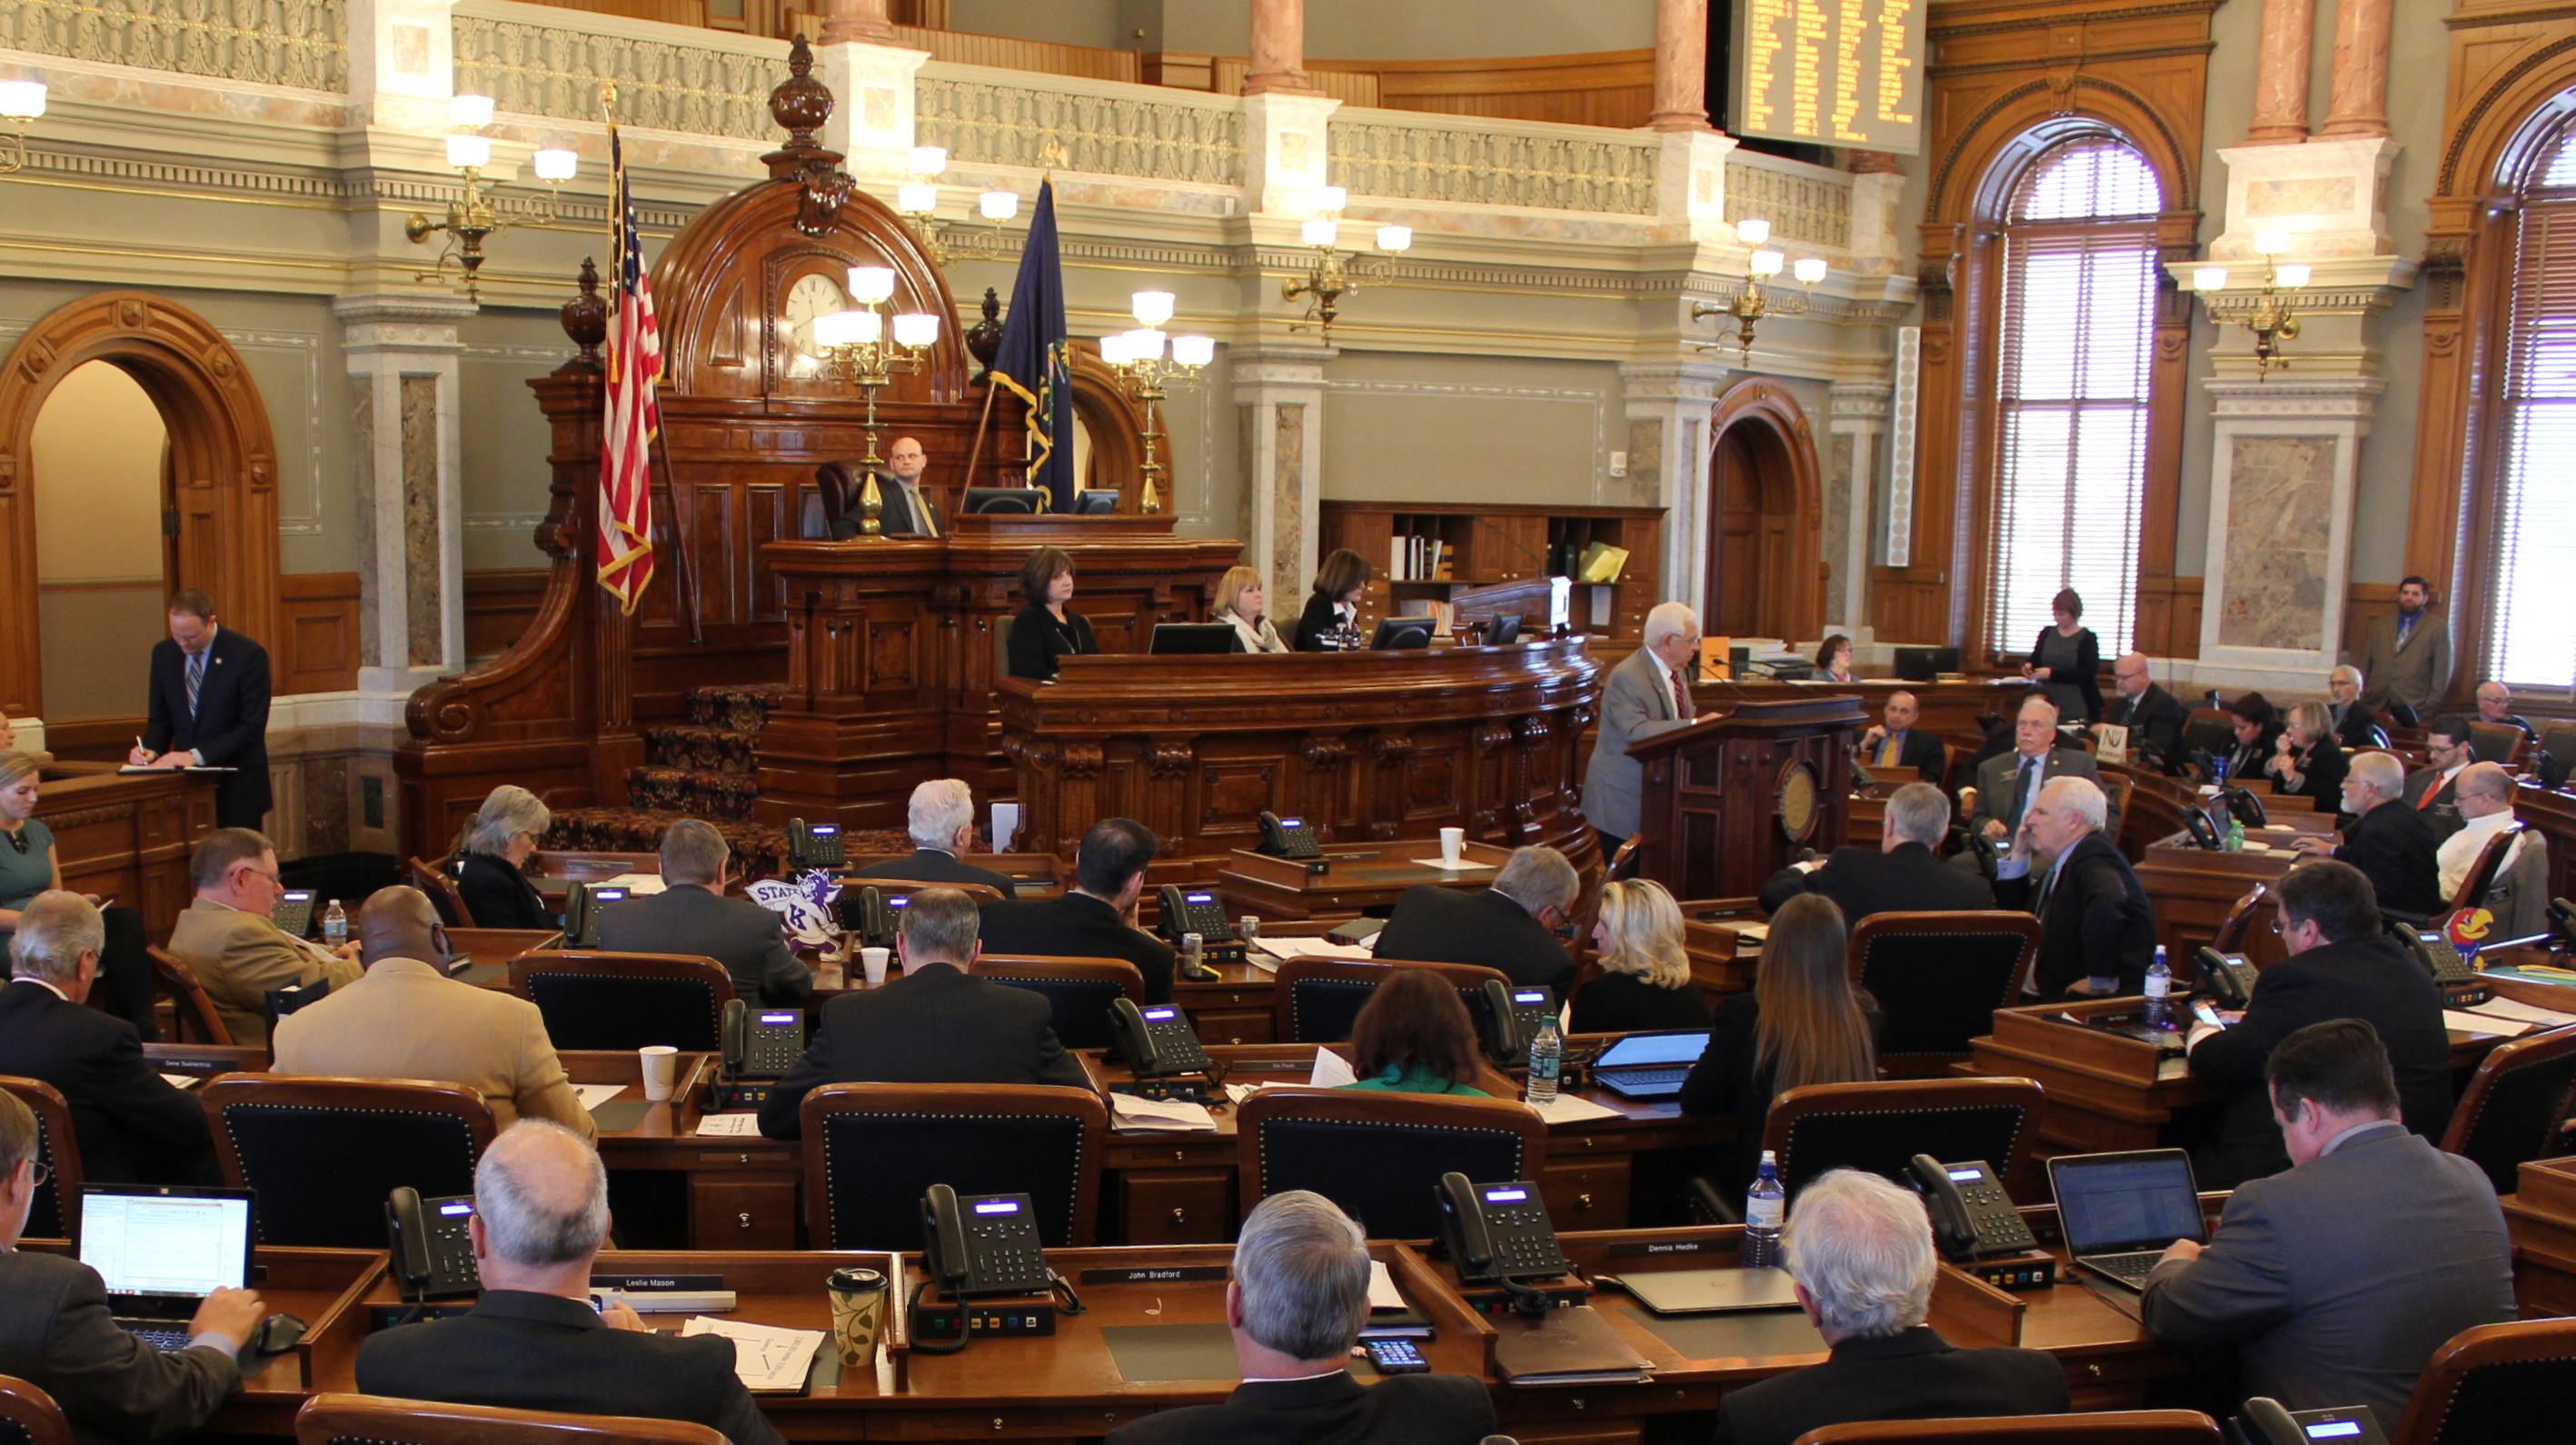 The Kansas House during the debate. (Photo by Stephen Koranda)